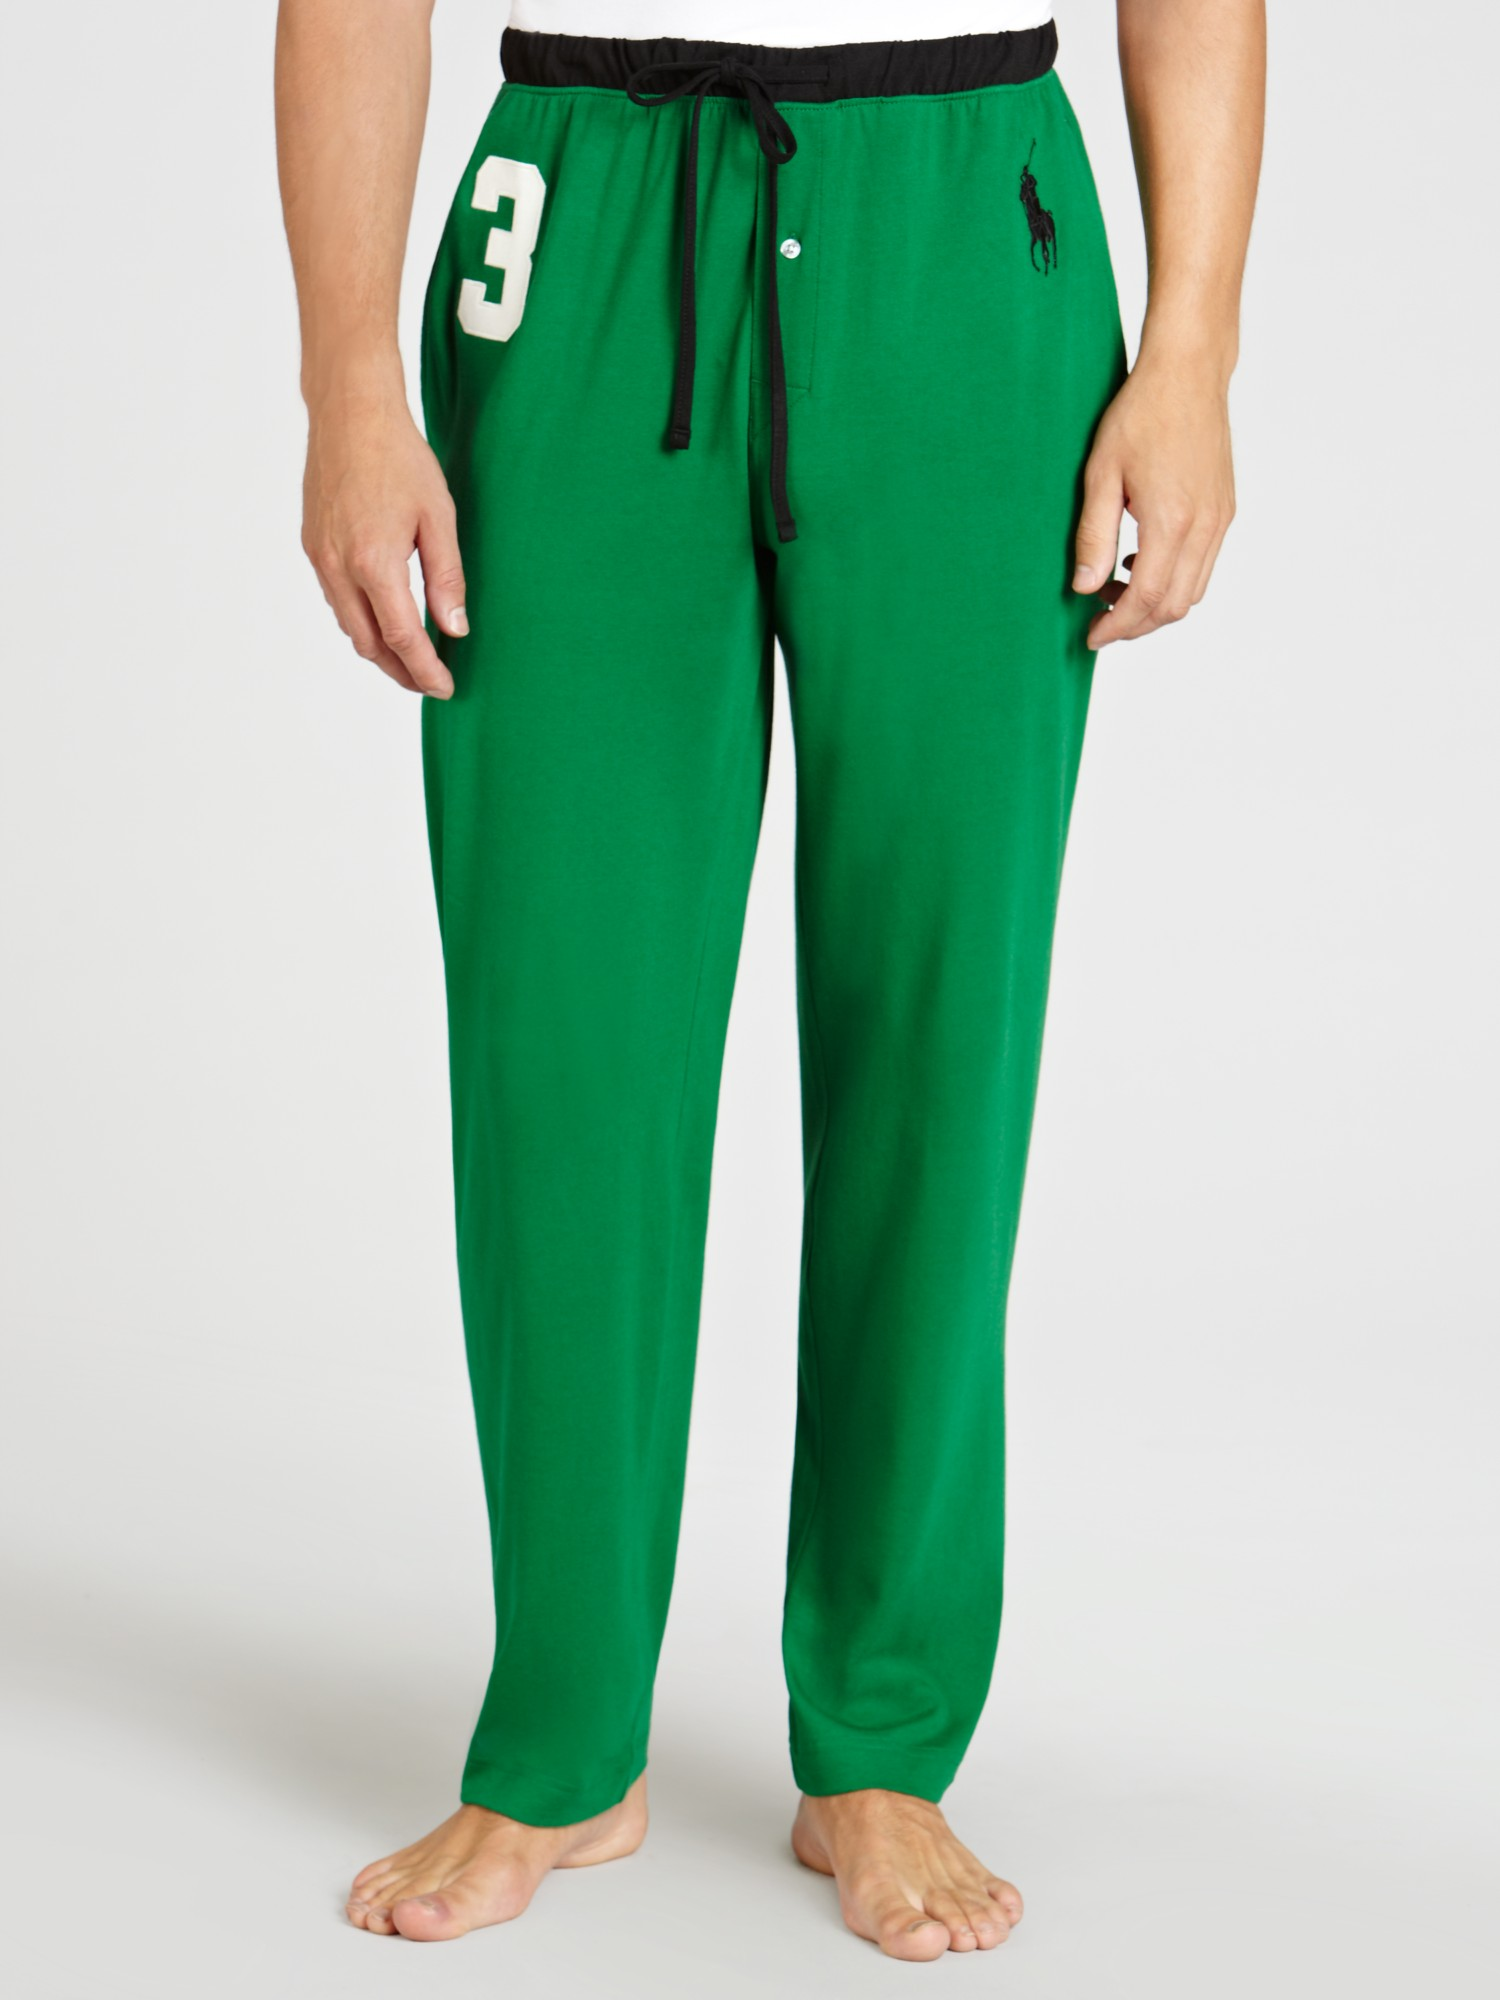 polo-ralph-lauren-green-no3-sweat-pants-product-2-15889216-102064190.jpeg